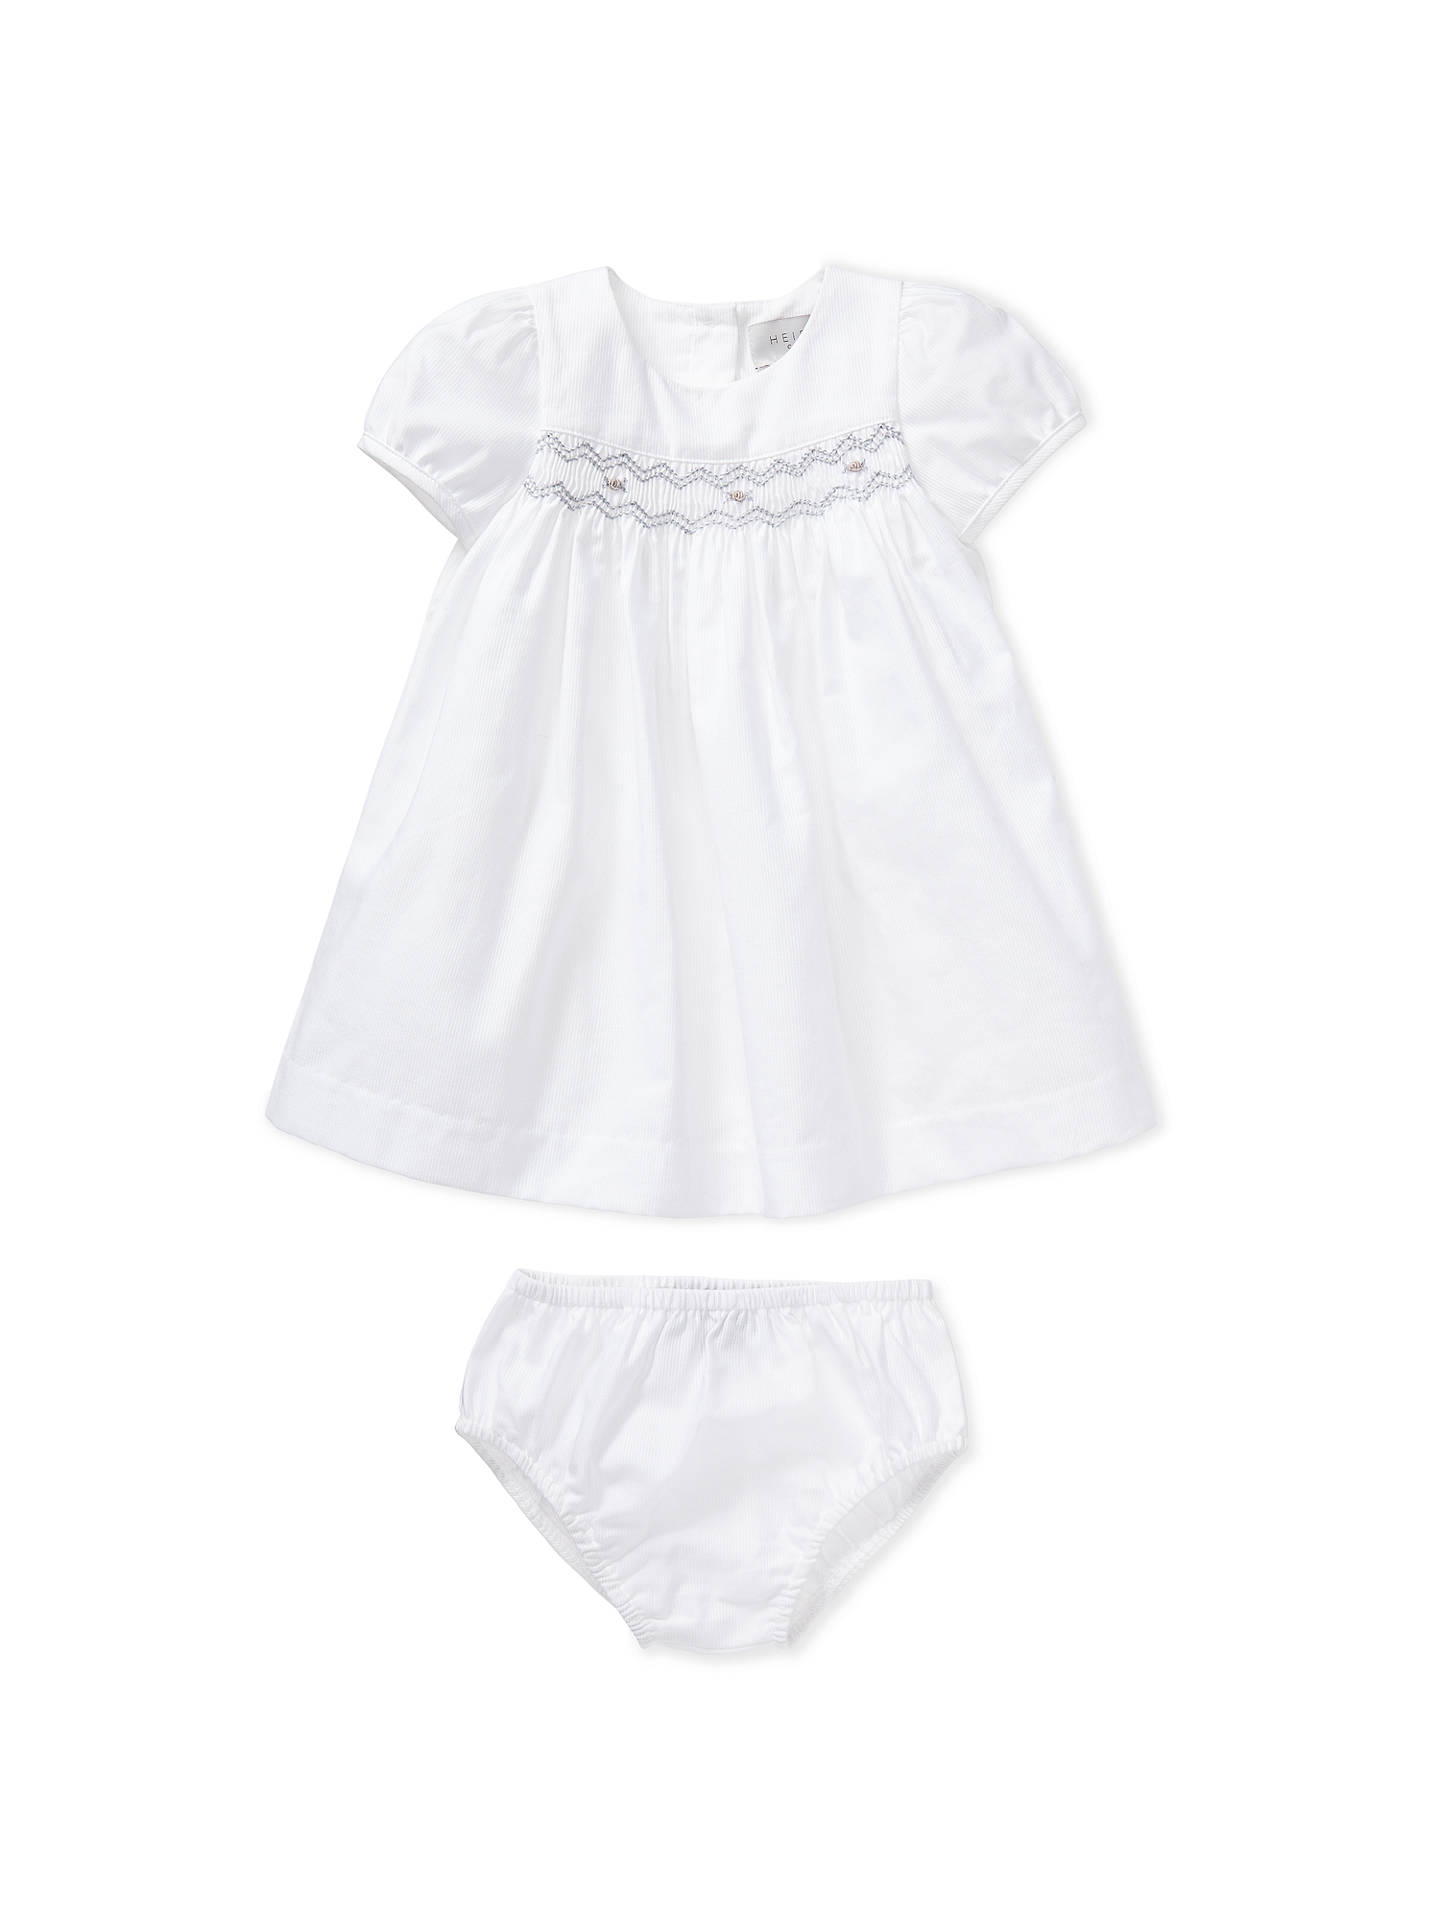 eac96aa1944 Buy John Lewis   Partners Heirloom Collection Woven Smock Dress and  Knickers Set